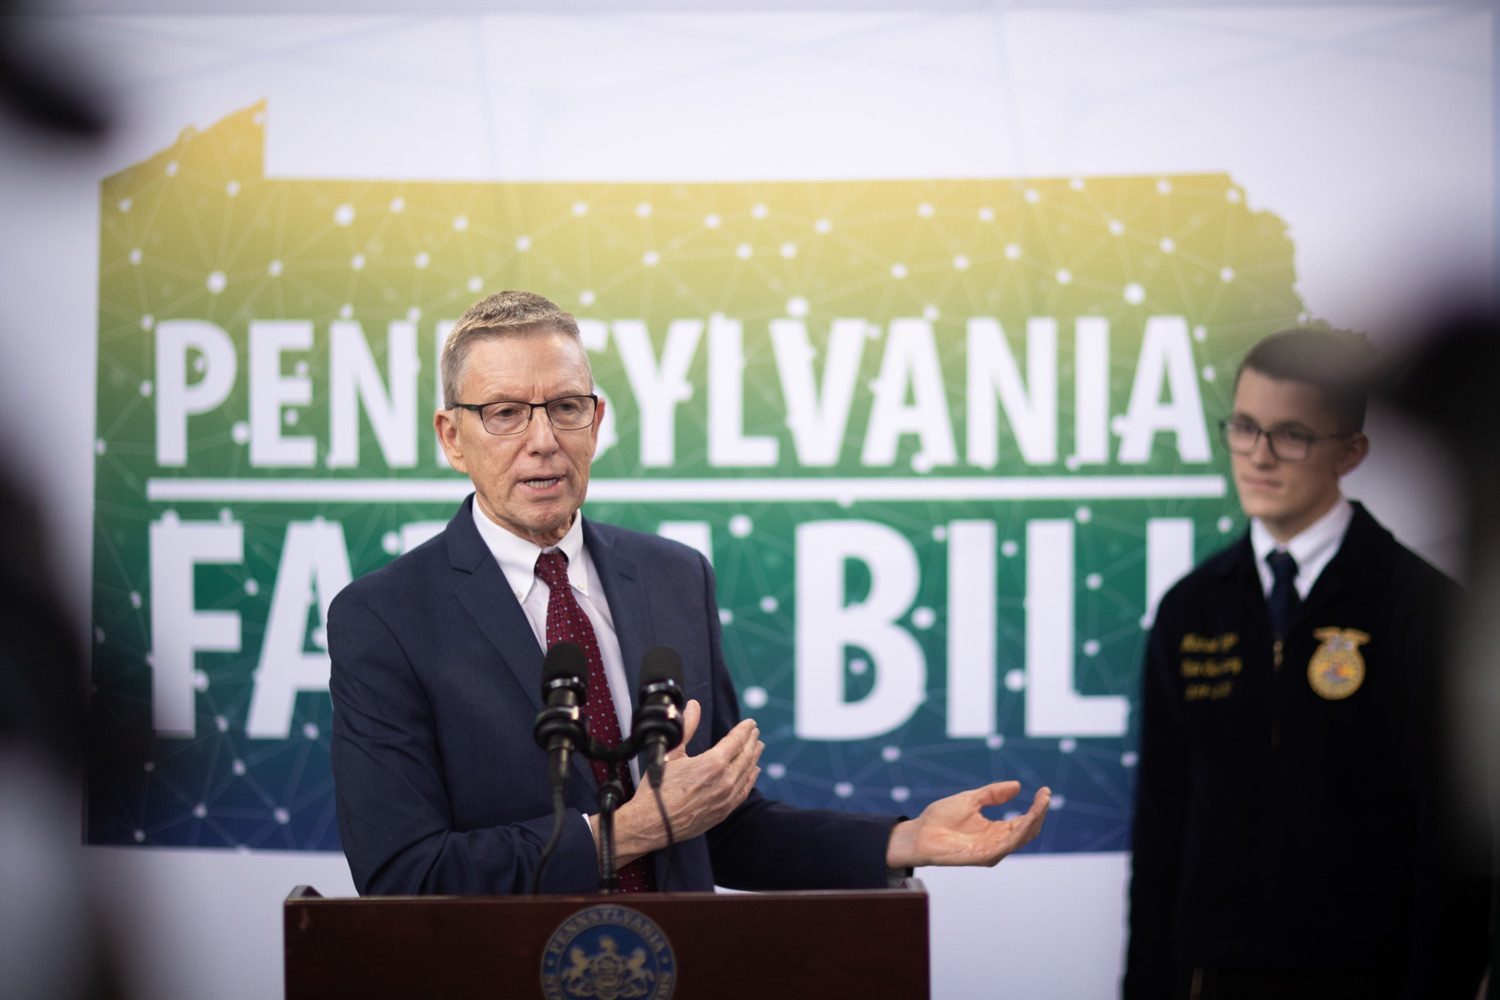 """<a href=""""http://filesource.abacast.com/commonwealthofpa/photo/17649_agric_youth_grant_farm_bill_dz_012.jpg"""" target=""""_blank"""">⇣Download Photo<br></a>Education Executive Deputy David Volkman speaking at the announcement. Governor Tom Wolf today announced the approval of $500,000 in Ag and Youth Grants to fund 55 projects that will improve access to agriculture education in the commonwealth, with a goal of addressing the looming 75,000 workforce deficit Pennsylvanias agriculture industry faces in the coming decade. Harrisburg, PA  January 6, 2020"""